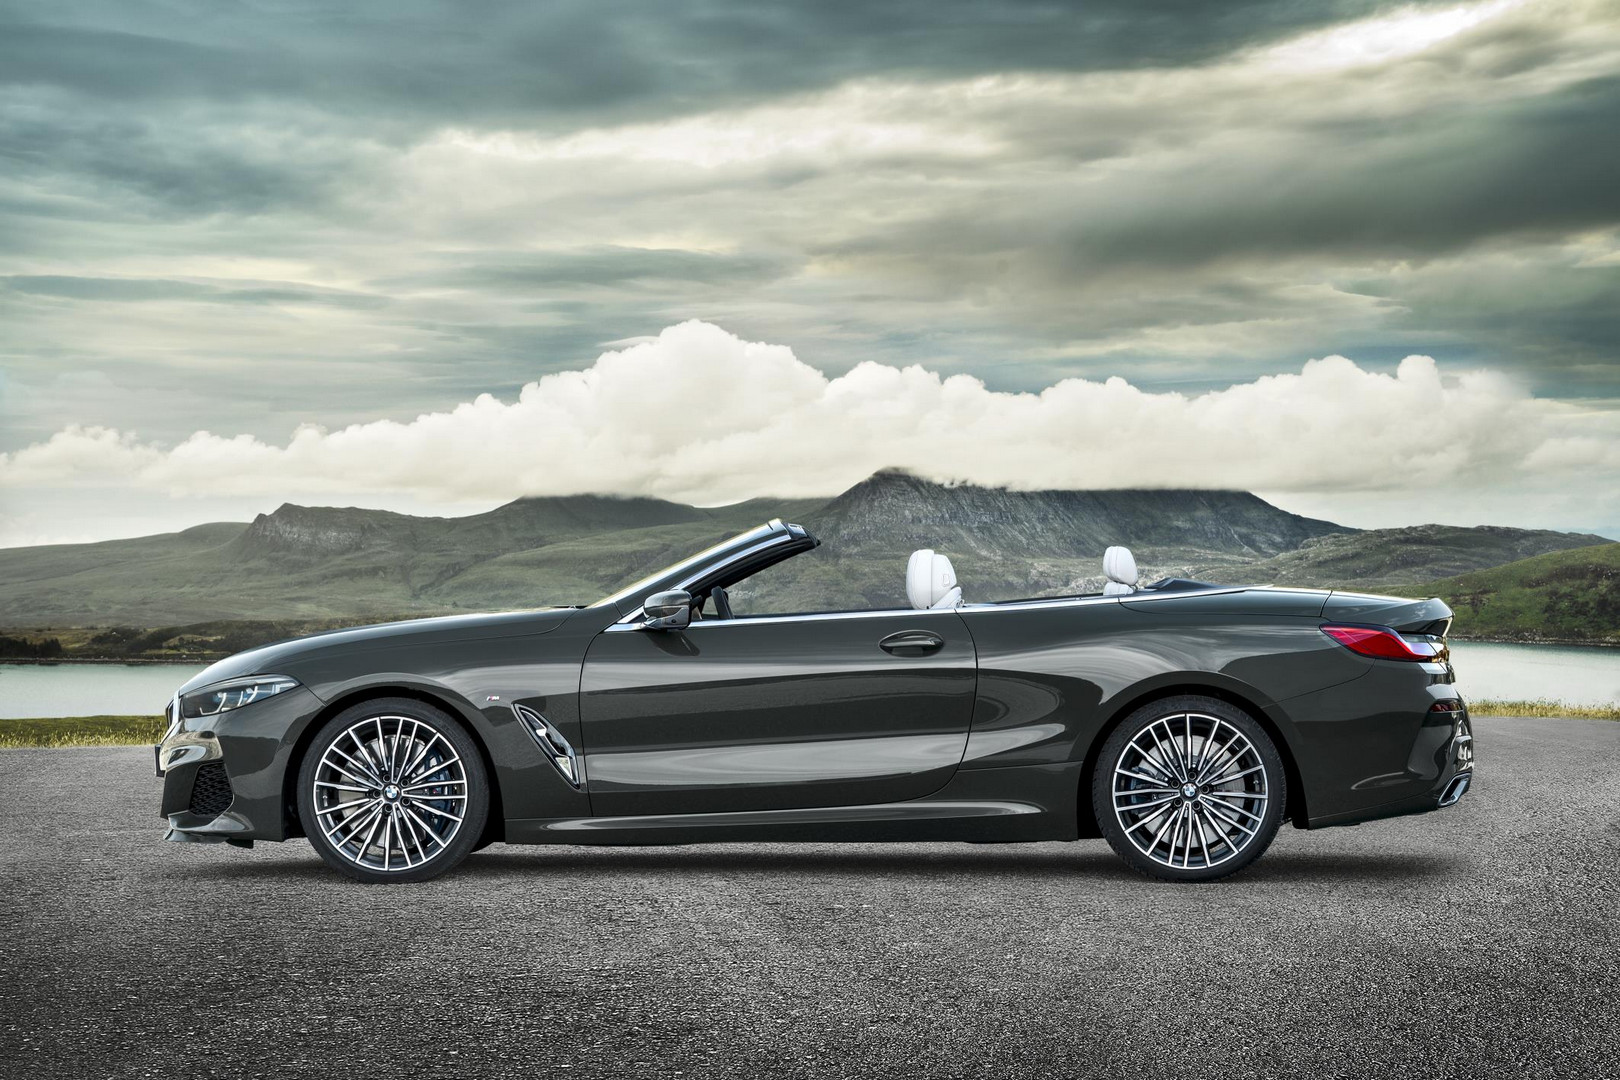 2019 BMW 8 Series Convertible Side View